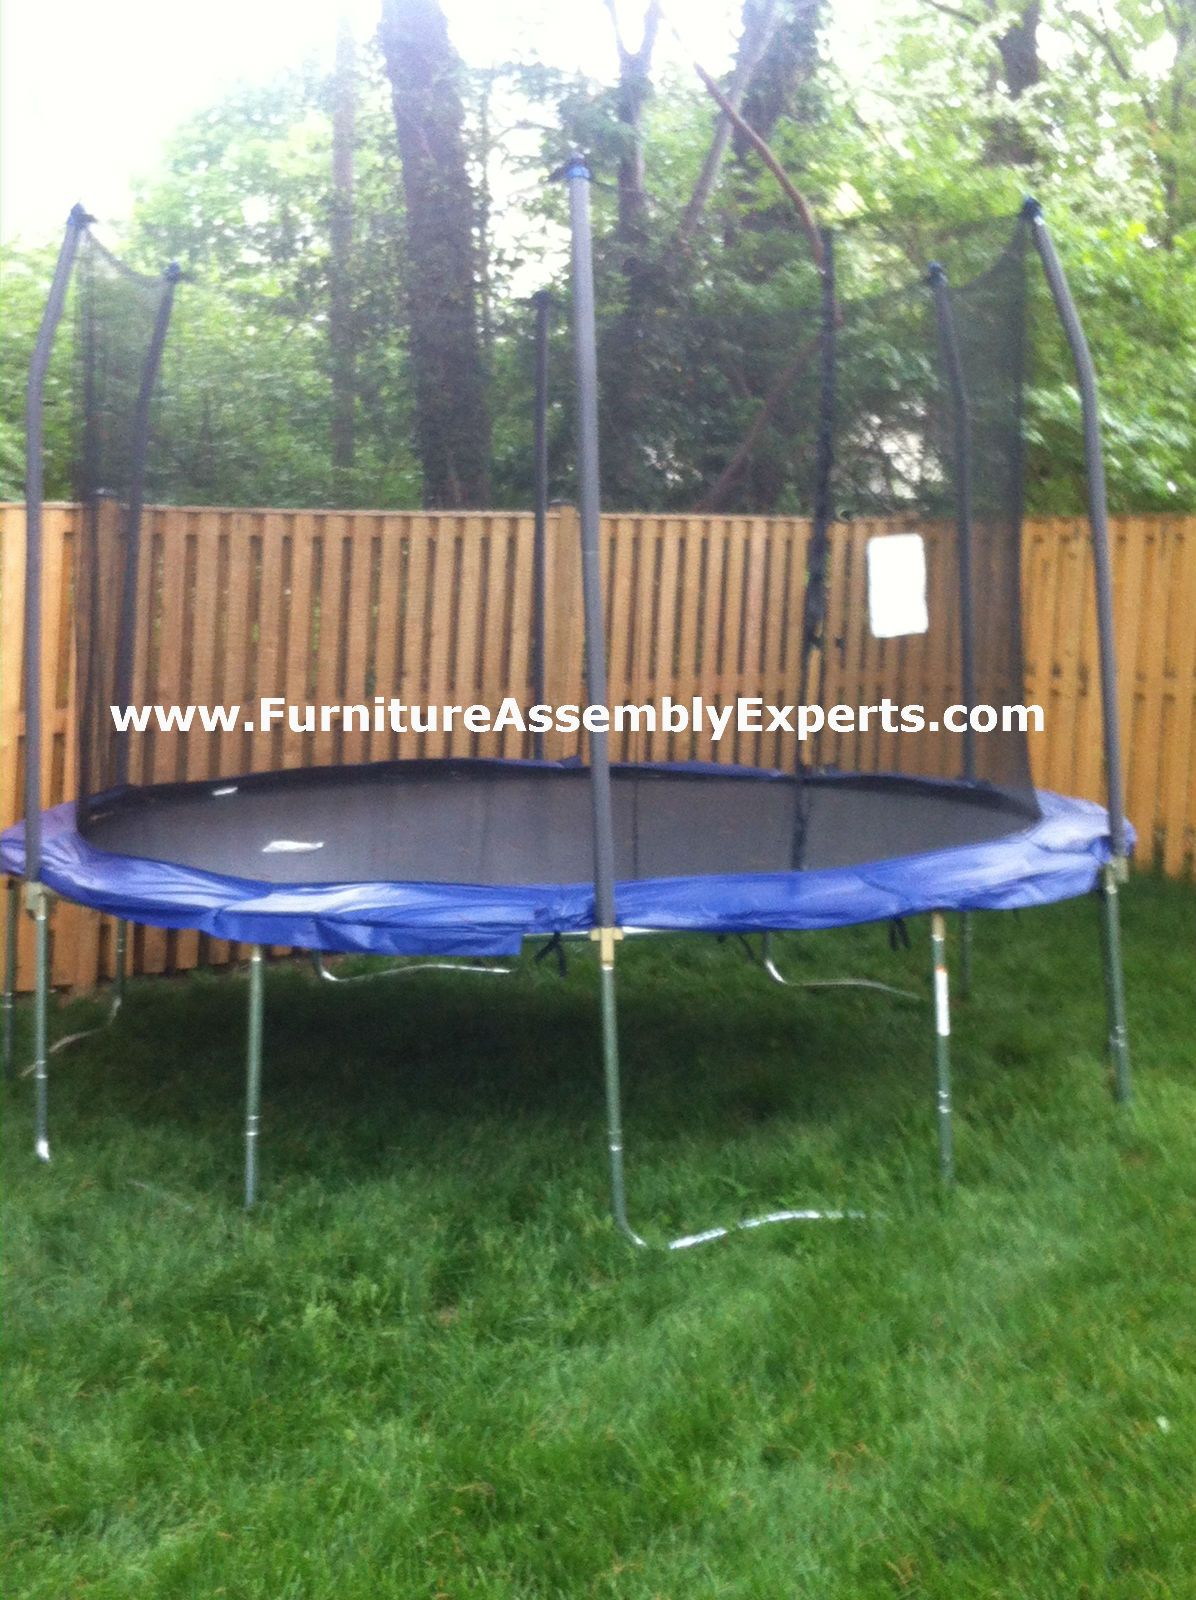 walmart trampoline assembled in bowie md for a customer at her home by furniture assembly experts llc